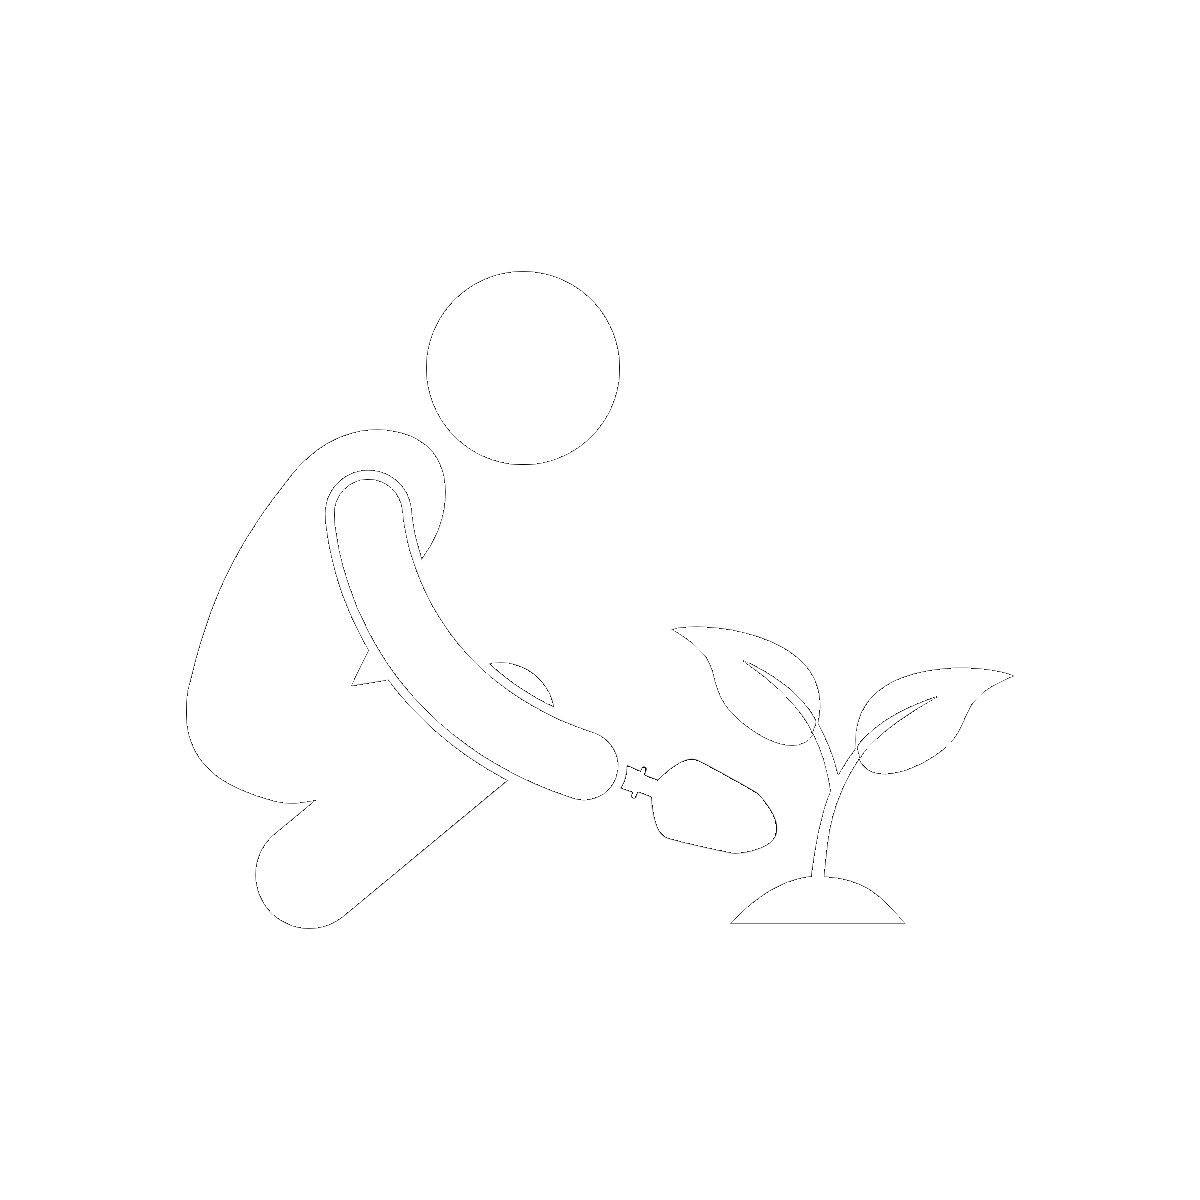 Symbol Crops and Planting